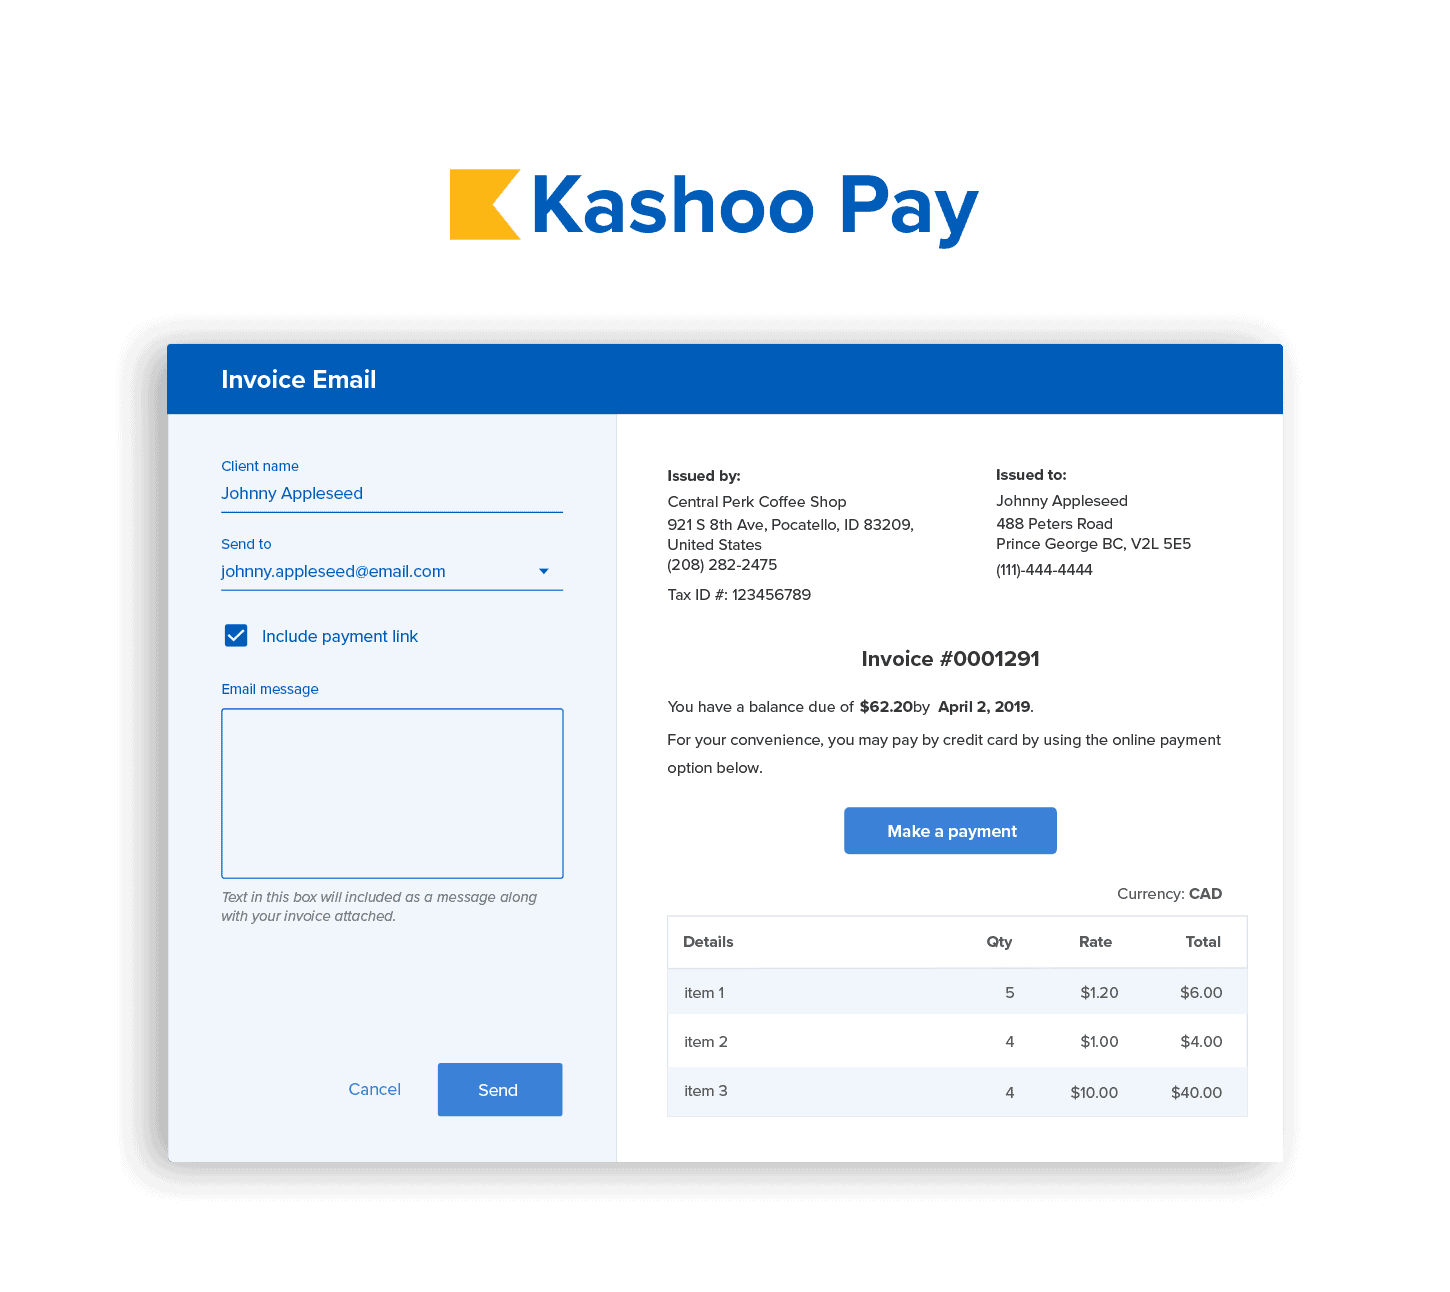 Get paid faster with Kashoo pay